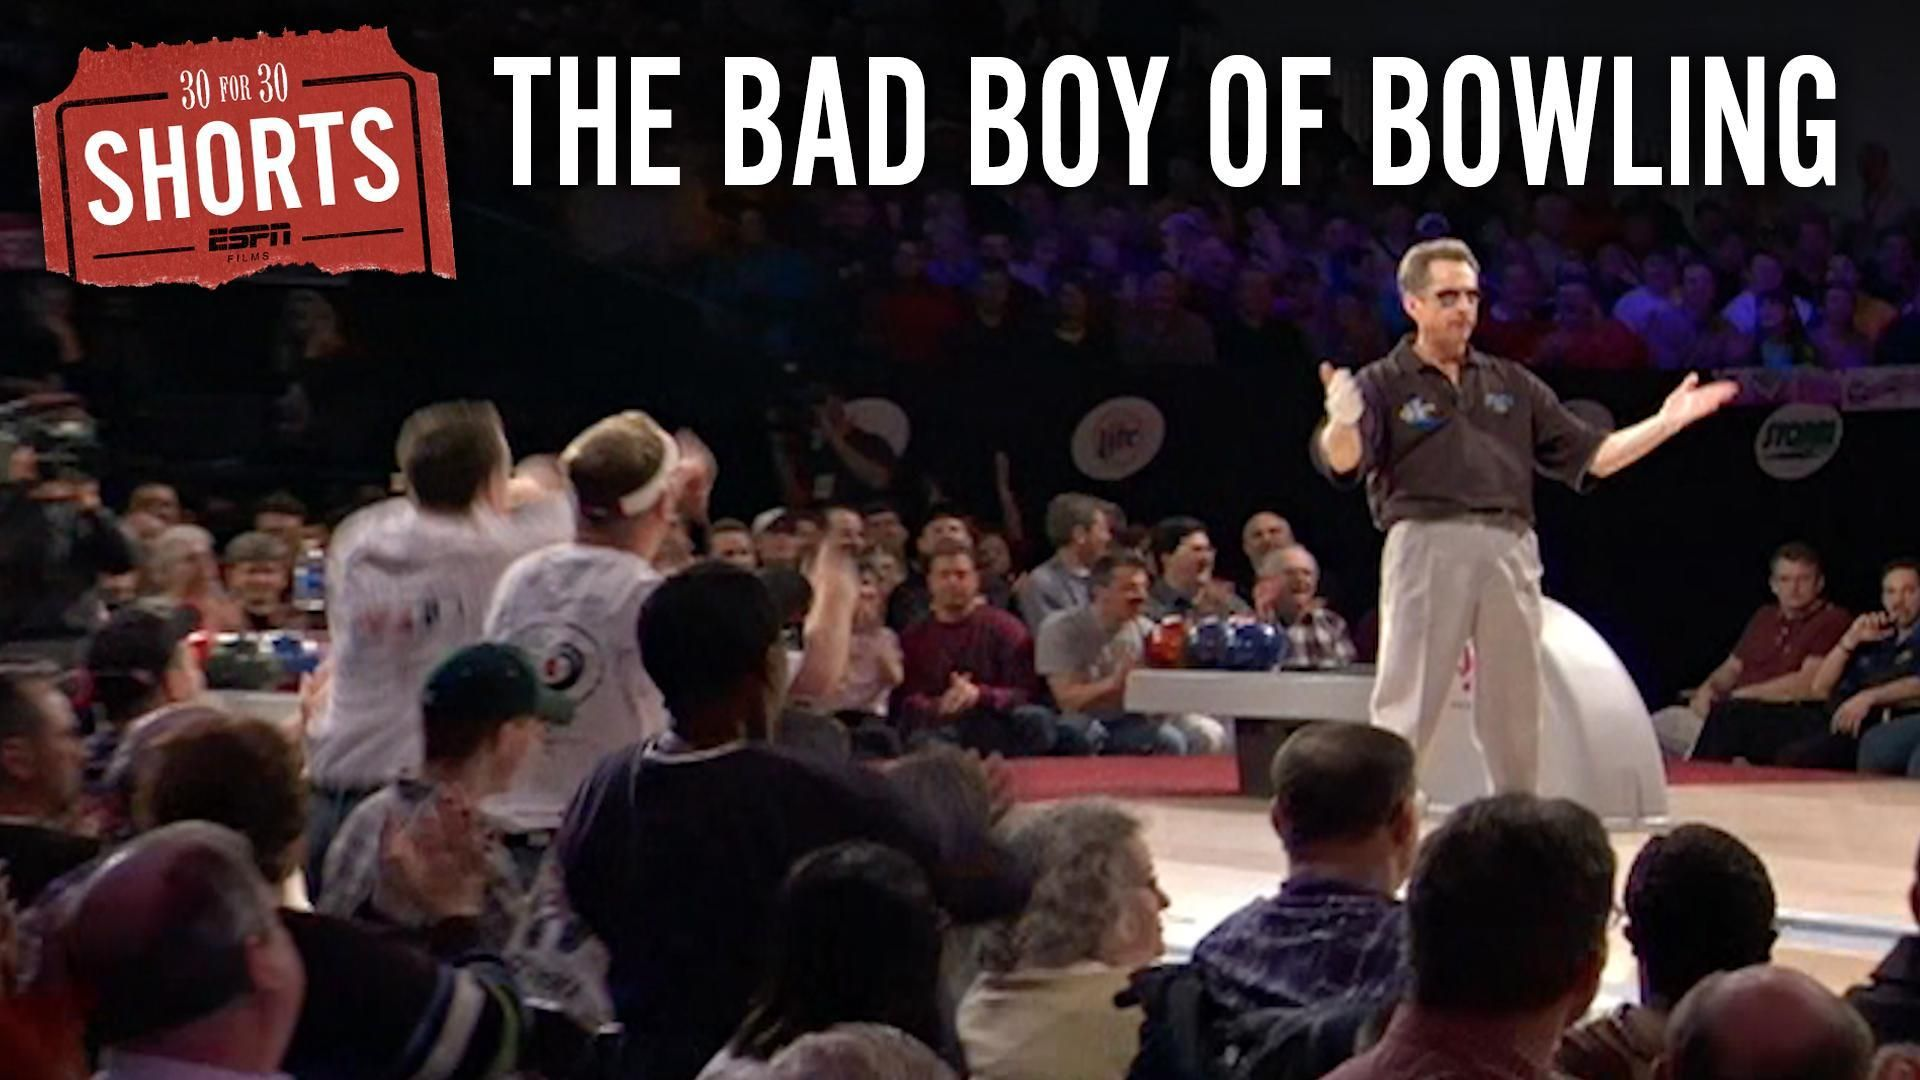 30 for 30 Shorts: The Bad Boy of Bowling